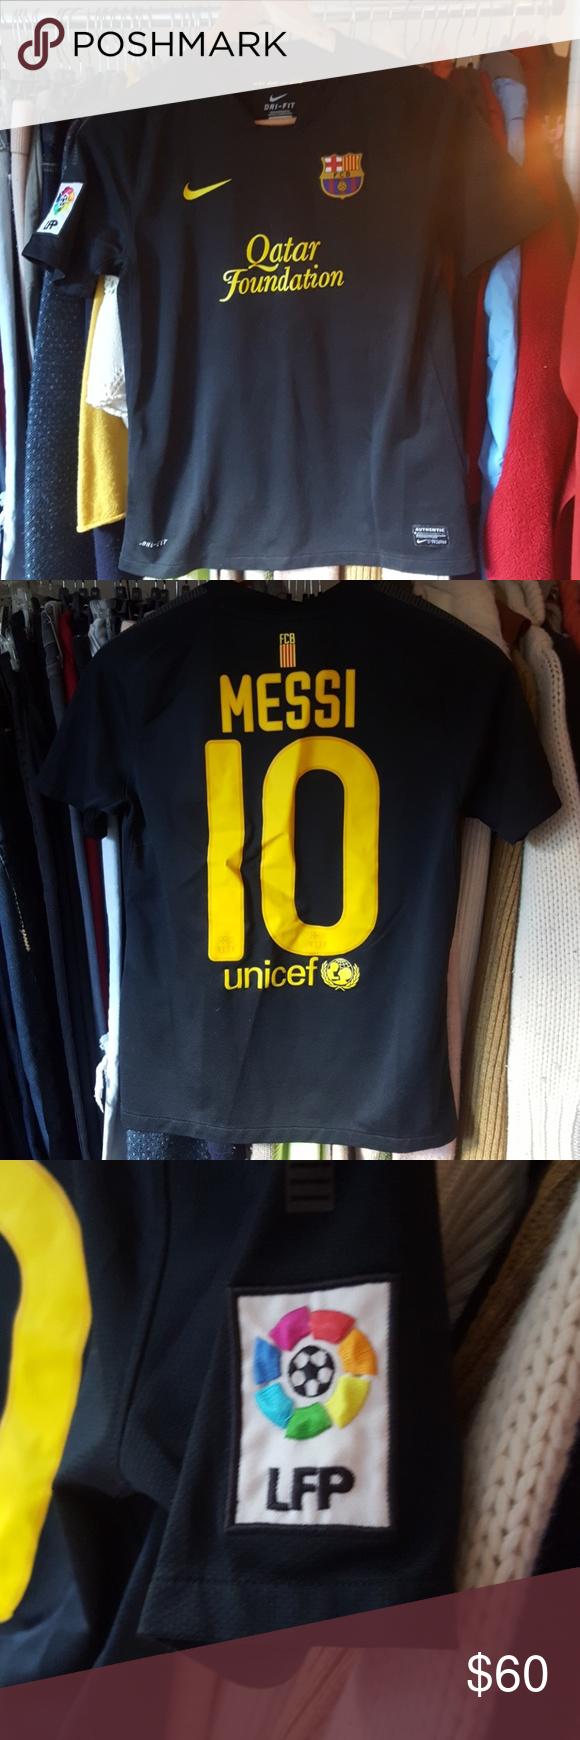 buy popular 91619 41d47 MESSI Soccer Jersey MESSI SOCCER JERSEY. Youth large fits ...